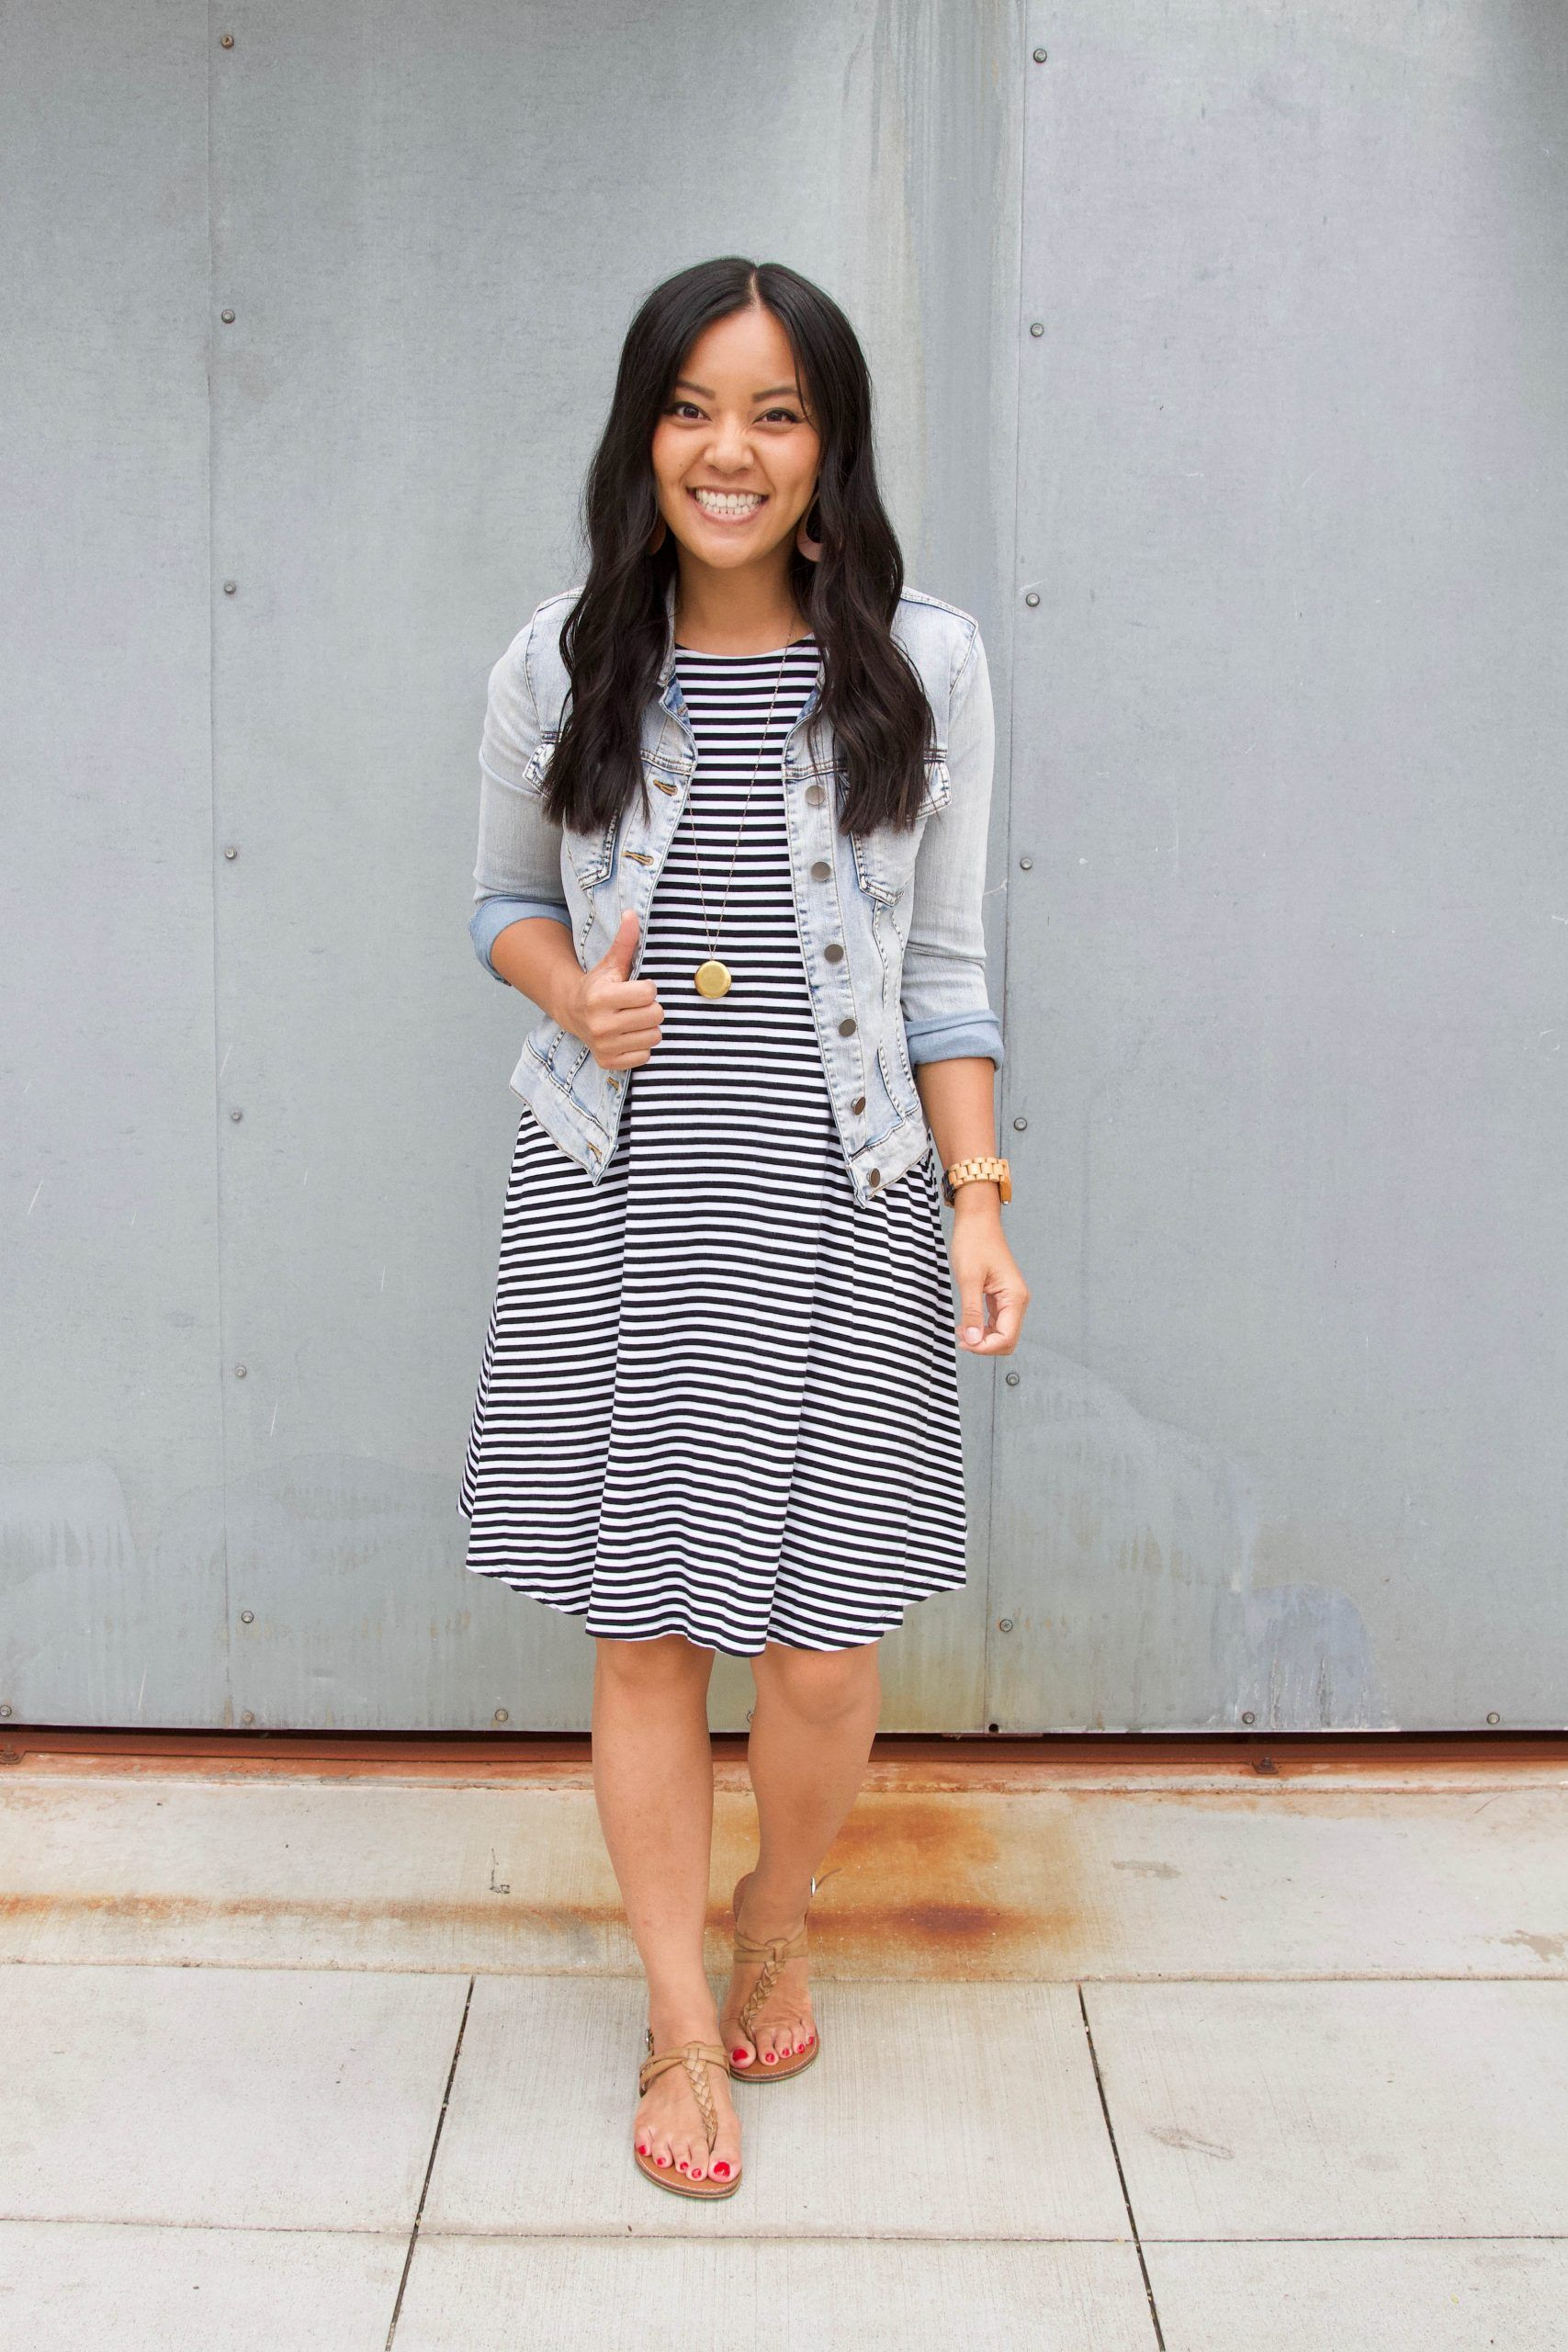 5 Ways To Wear A Striped Dress Or Any Dress This Summer Striped Dress Outfit Summer Dress Outfits White Striped Dress Outfit [ 2560 x 1707 Pixel ]